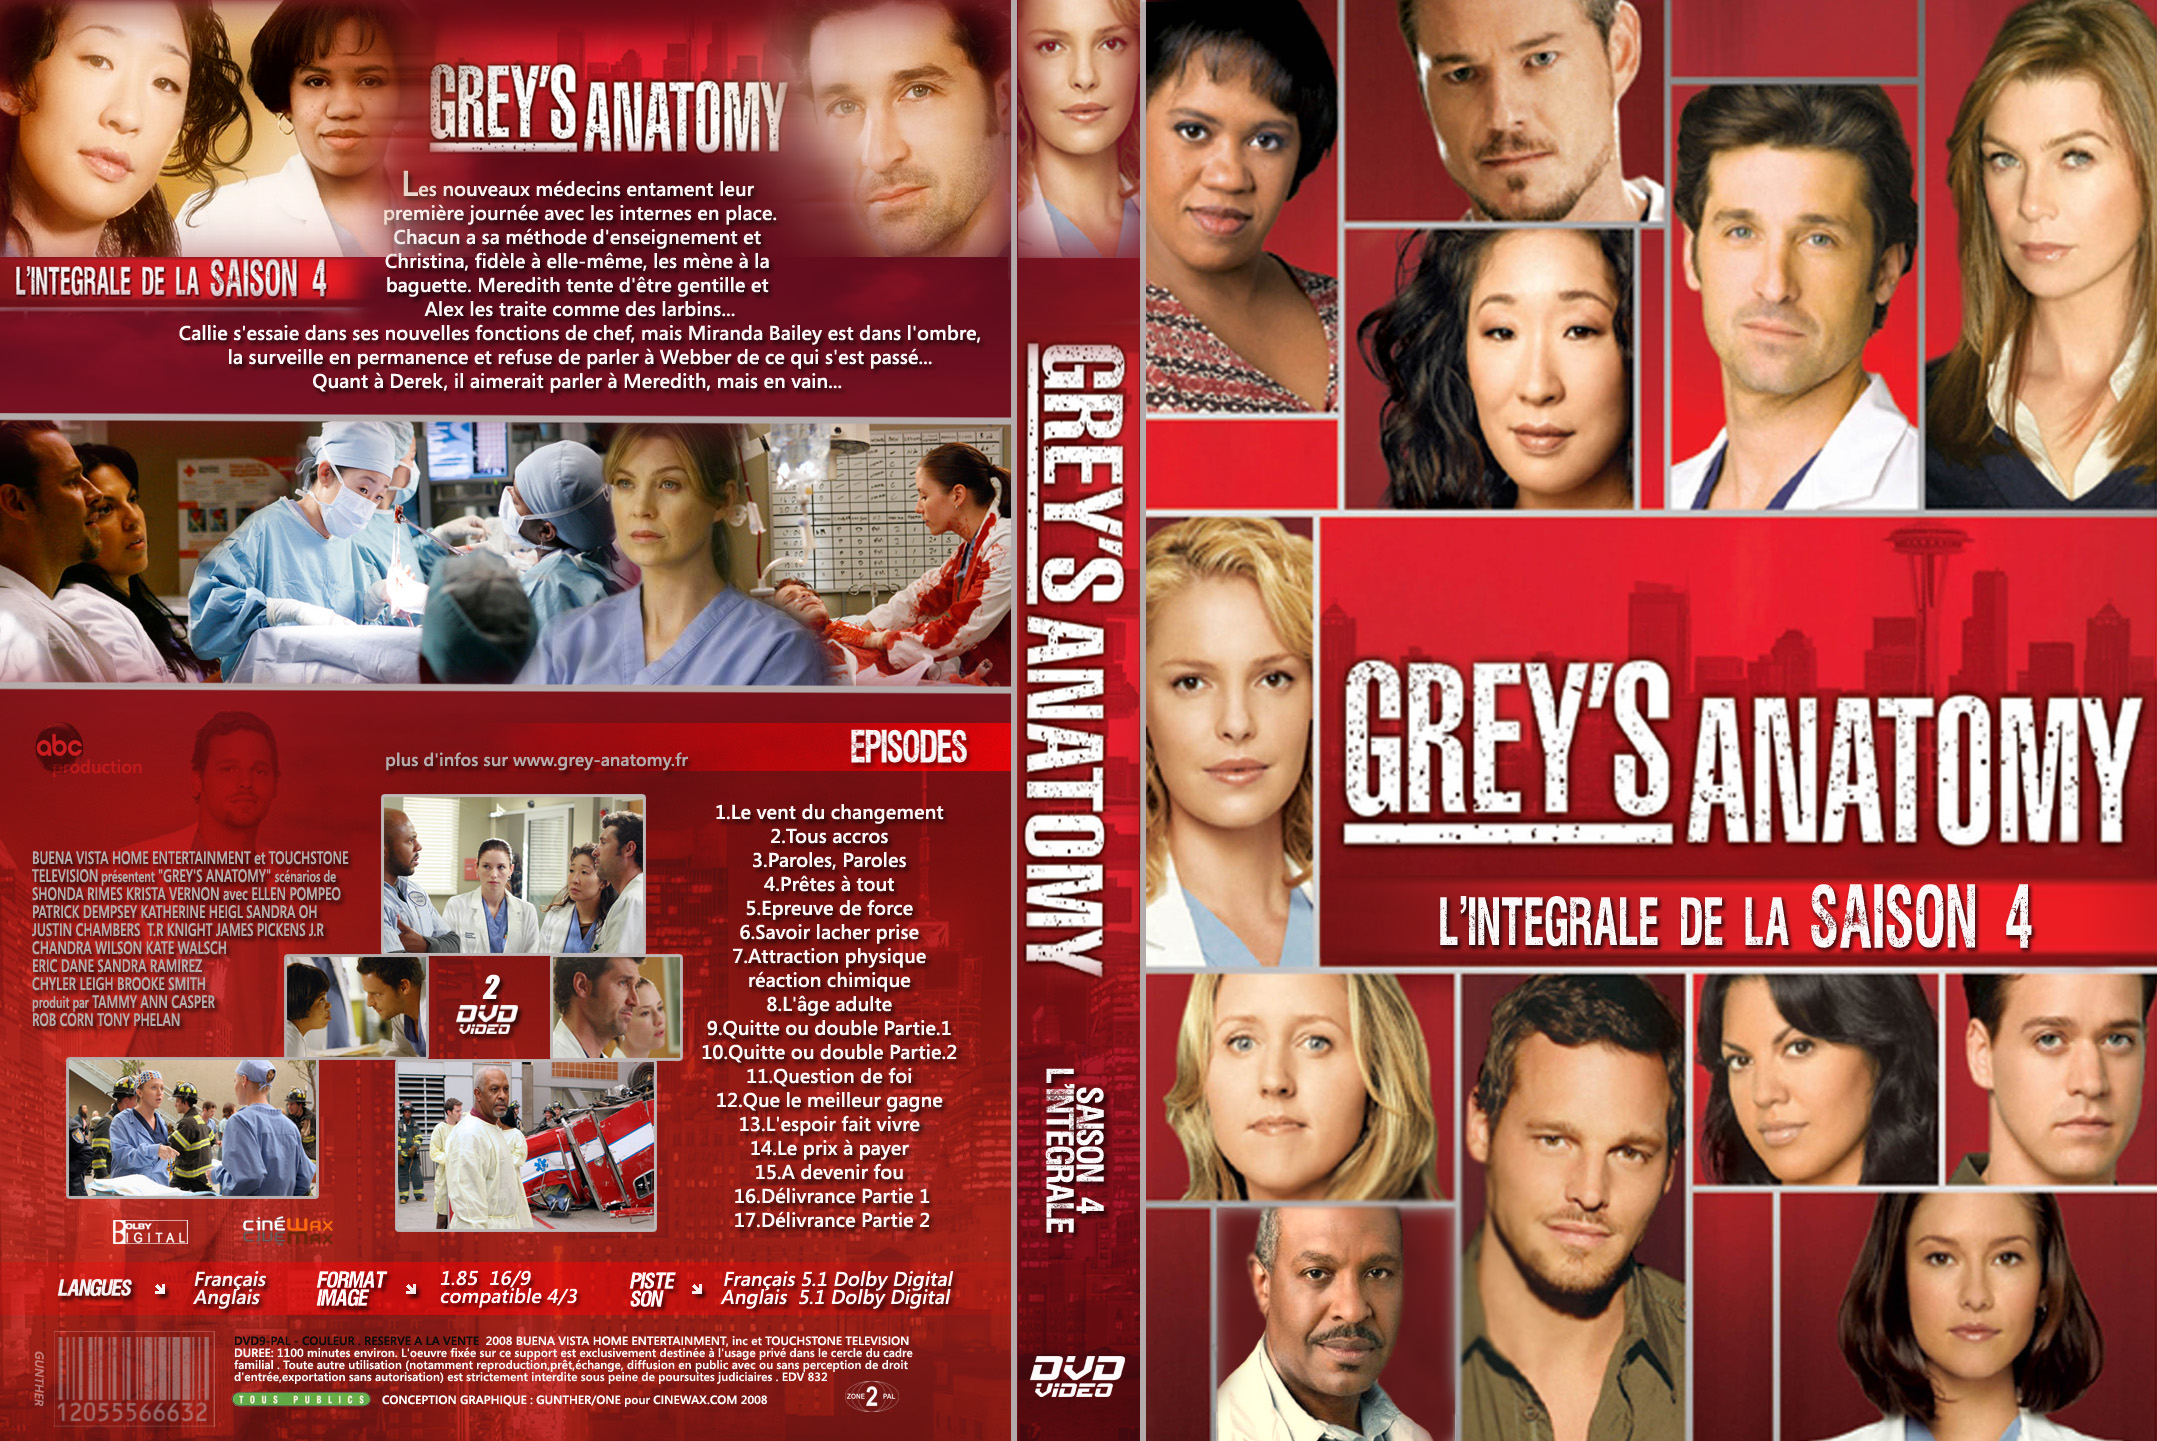 Grey Anatomy Saison Integrale Custom Gunther Hksima Blog